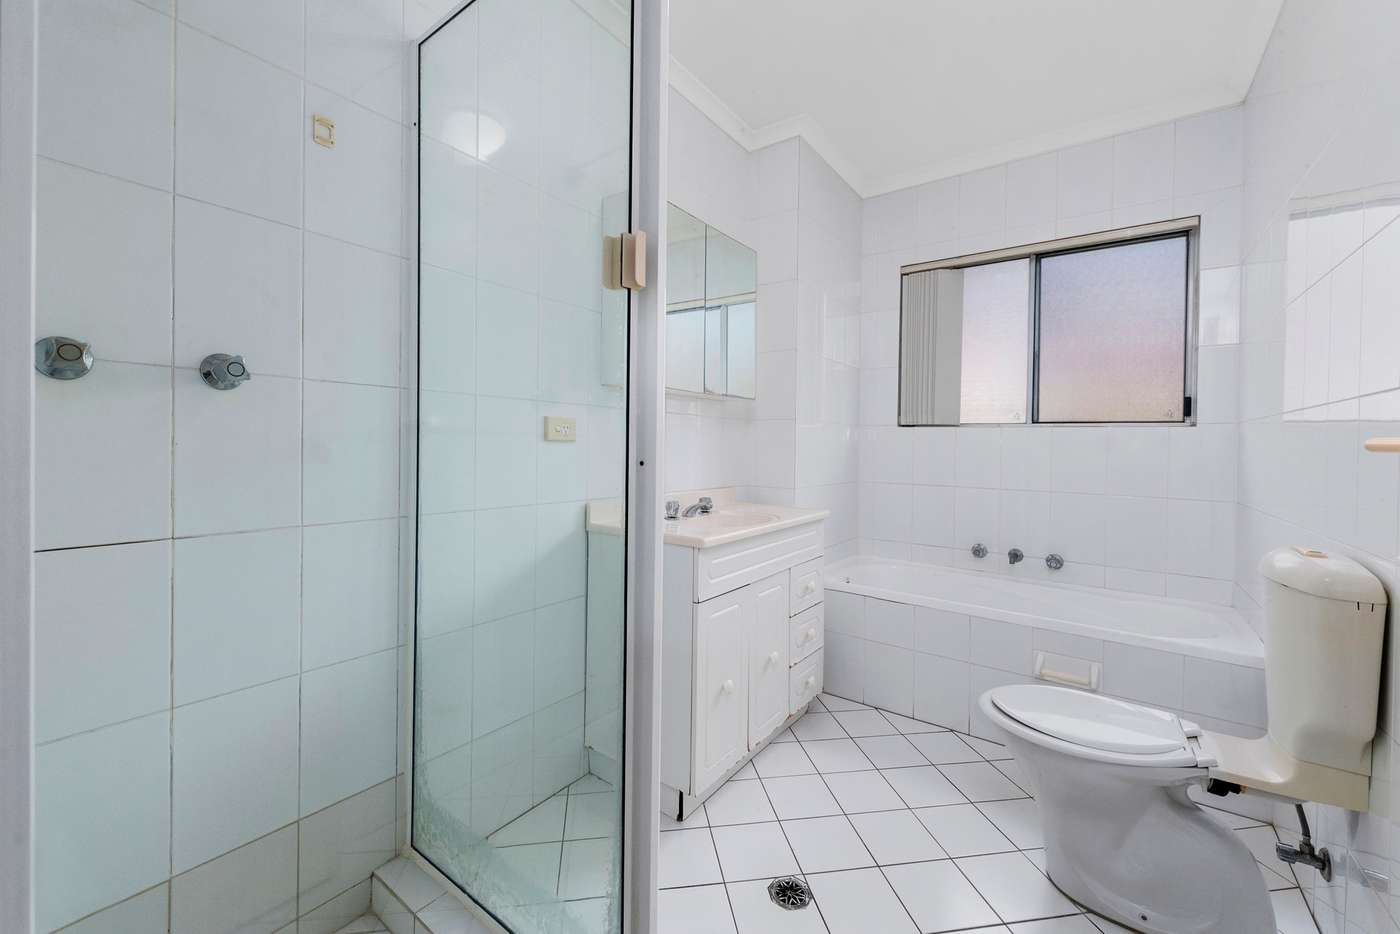 Fifth view of Homely apartment listing, 7/48 Albert Street, Hornsby NSW 2077